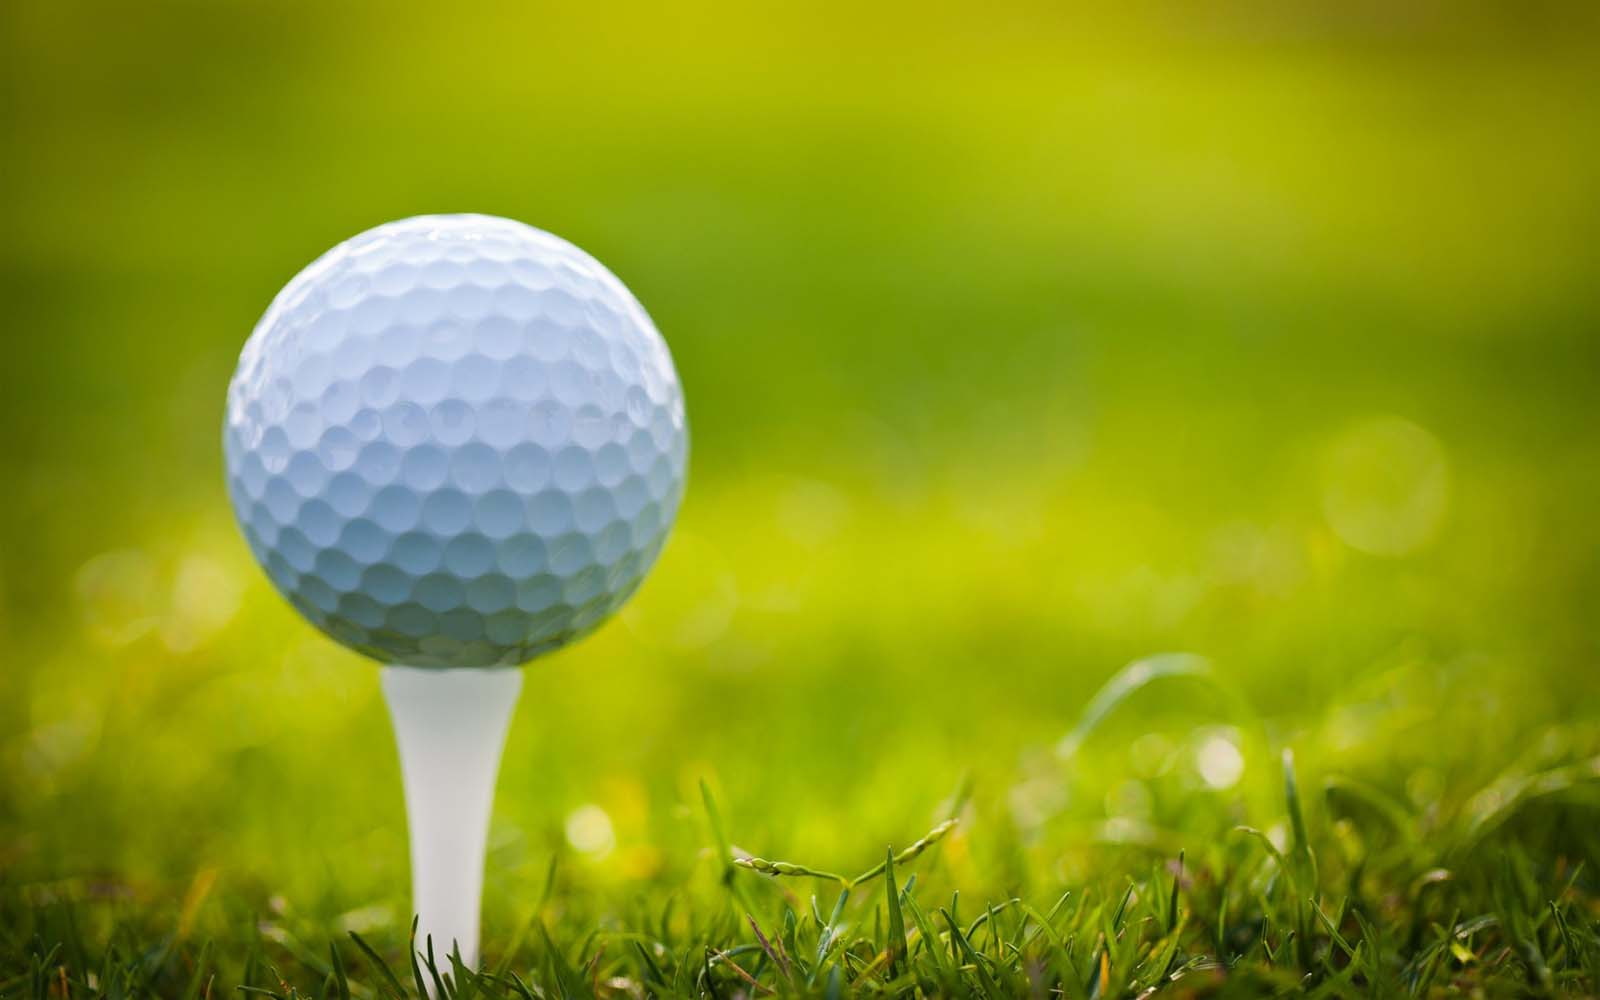 golf ball wonderful sport photos hd desktop wallpaper c a t